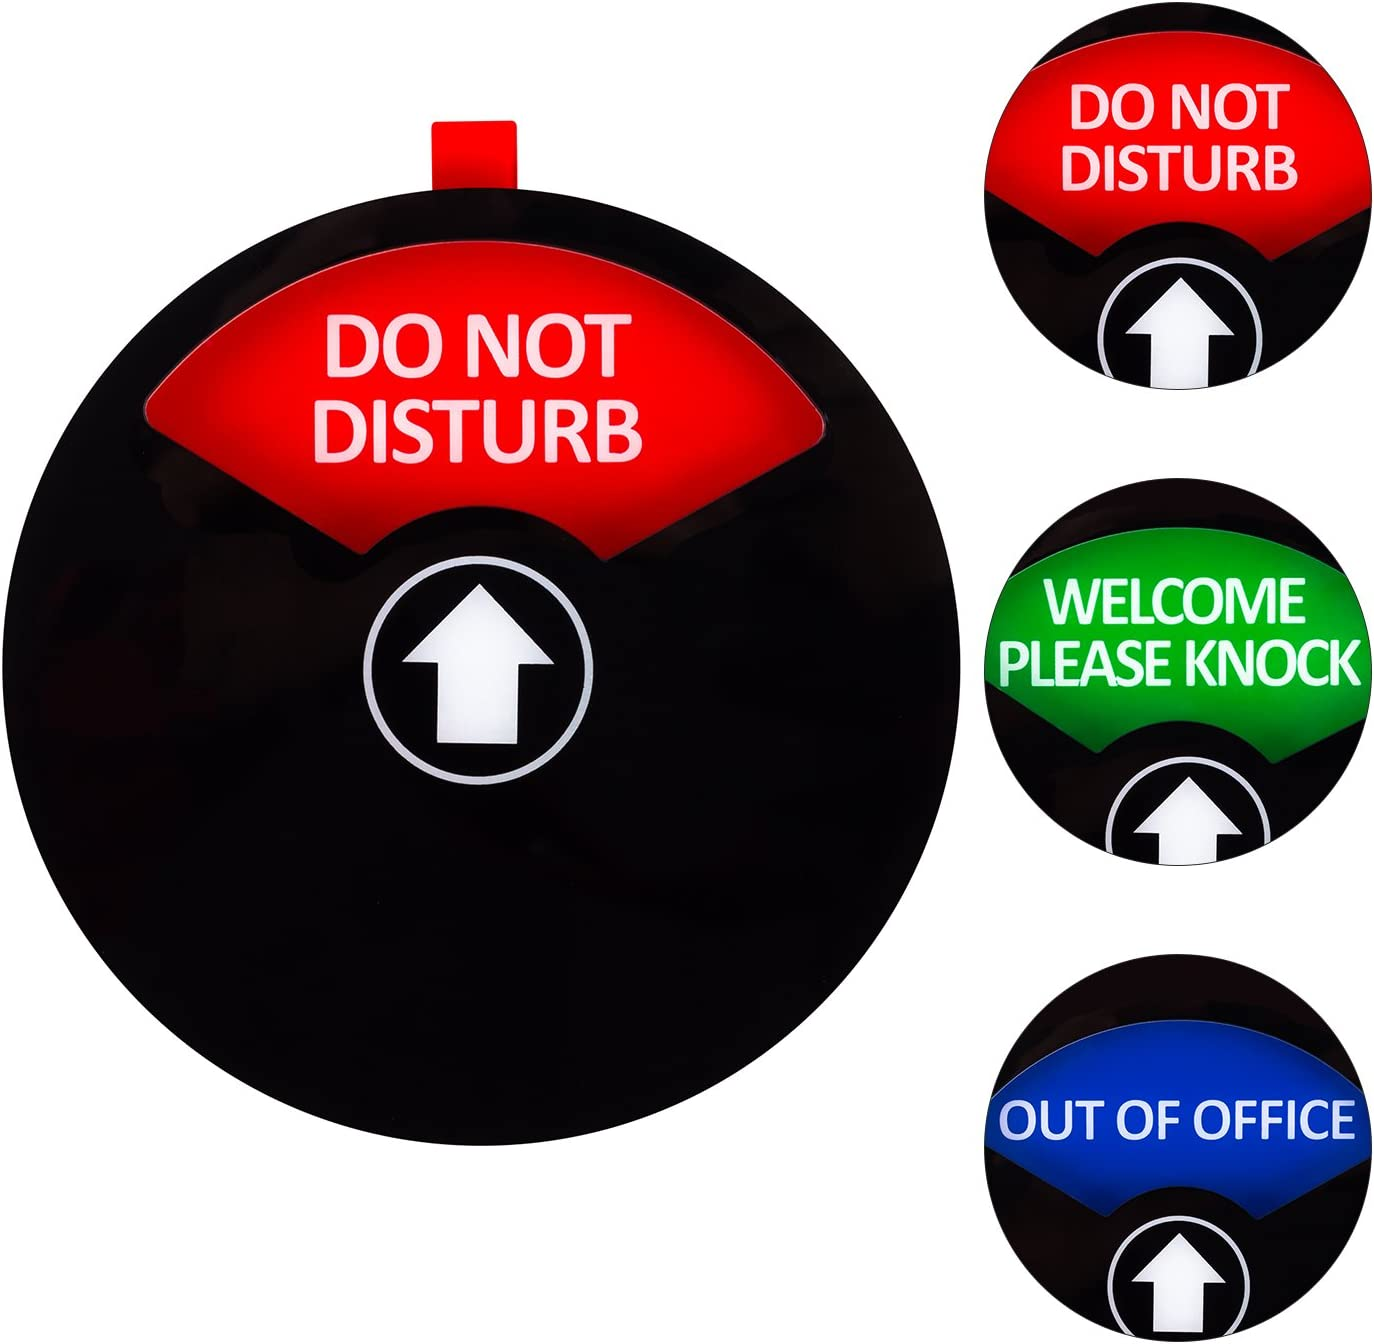 Kichwit Privacy Sign, Do Not Disturb Sign, Out of Office Sign, Welcome Please Knock Sign, Office Sign, 5 Inch, Black